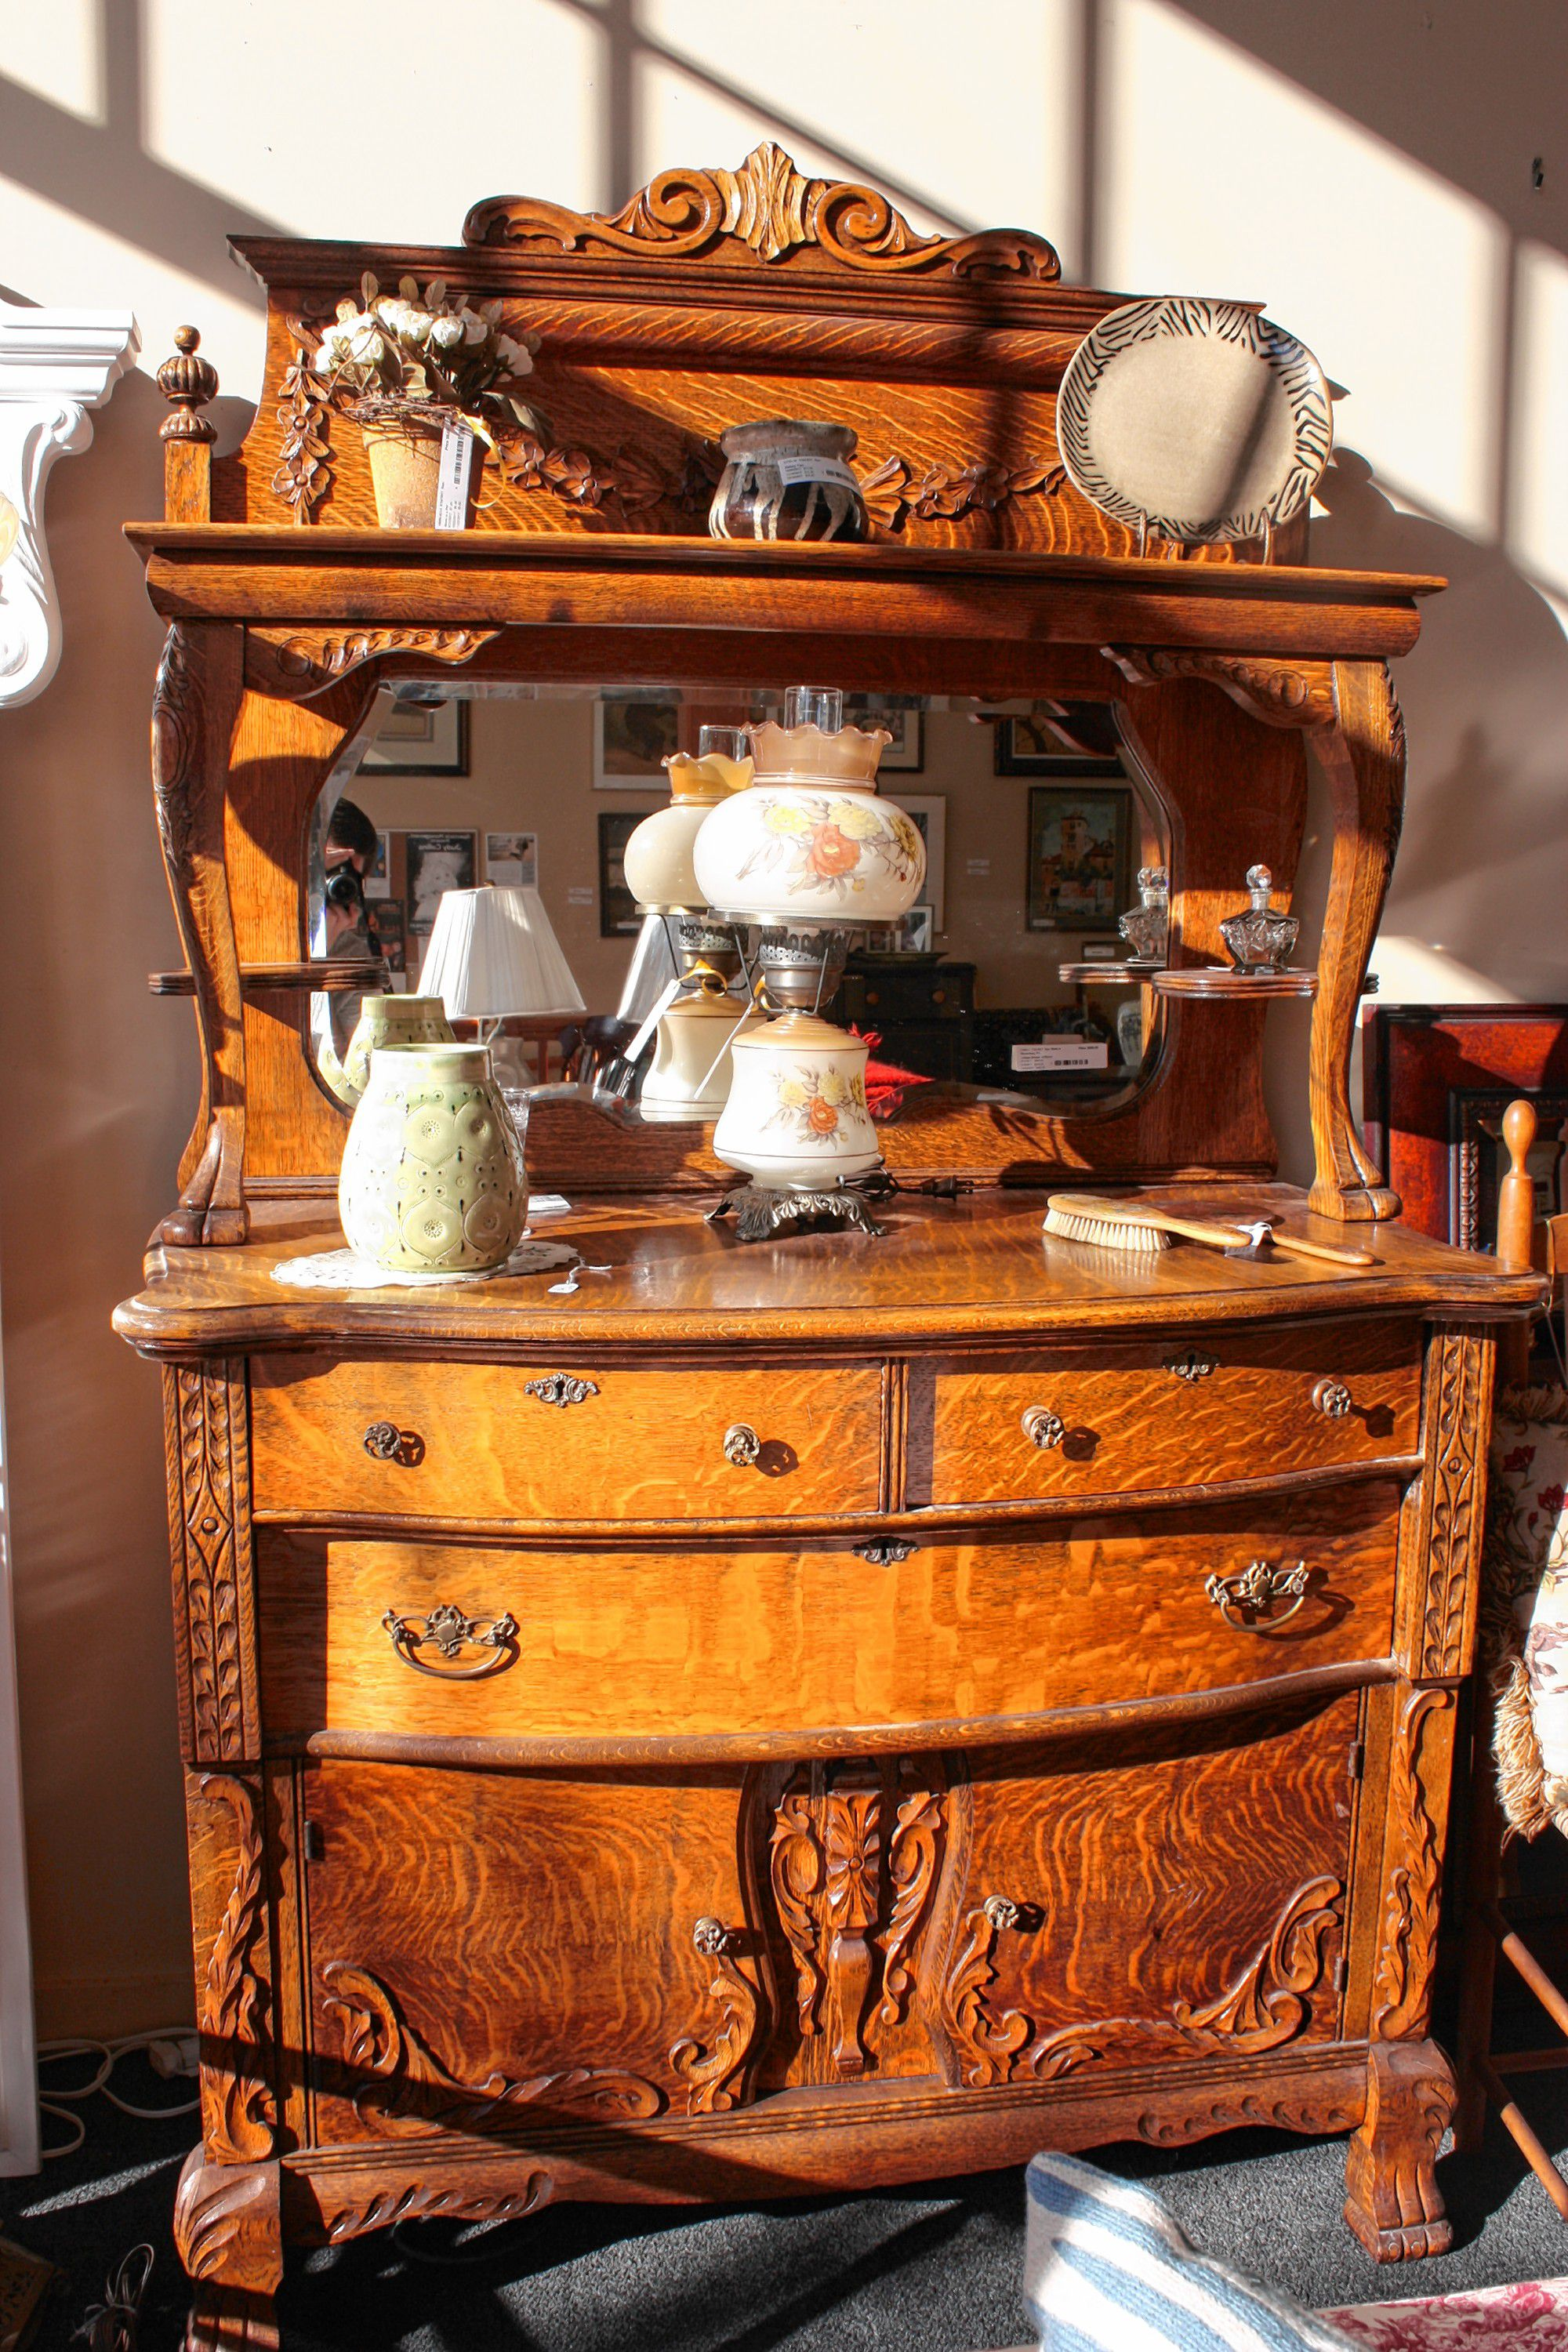 What Exactly Makes An Item Antique And How Can You Tell